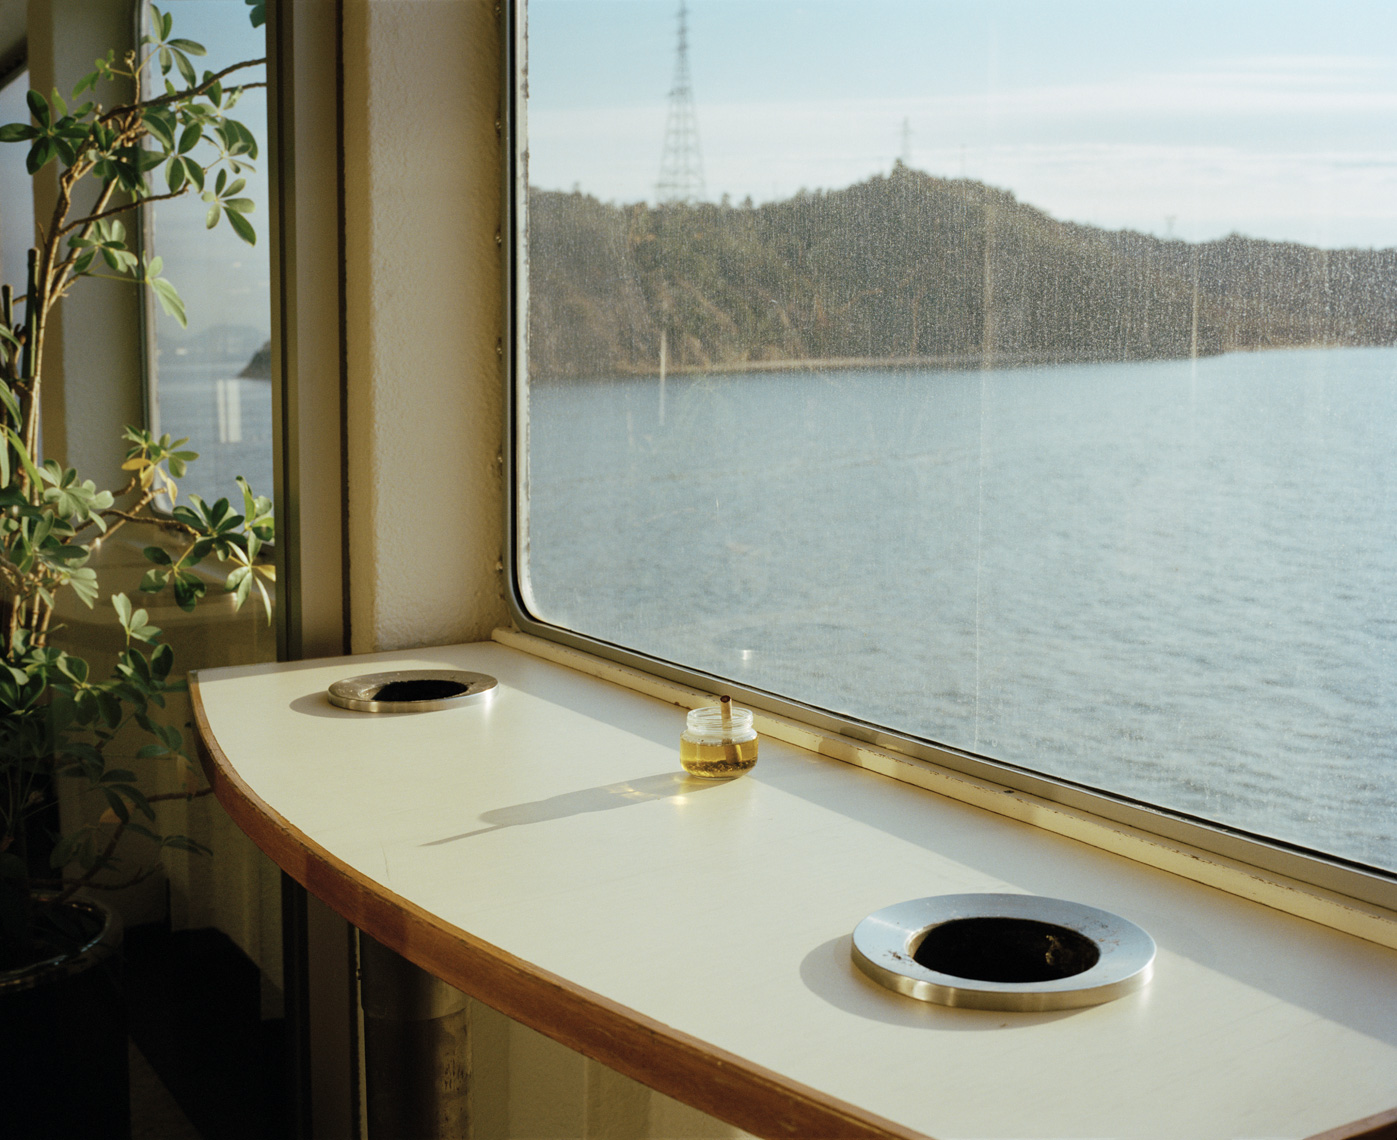 Ashtray | Naoshima Ferry